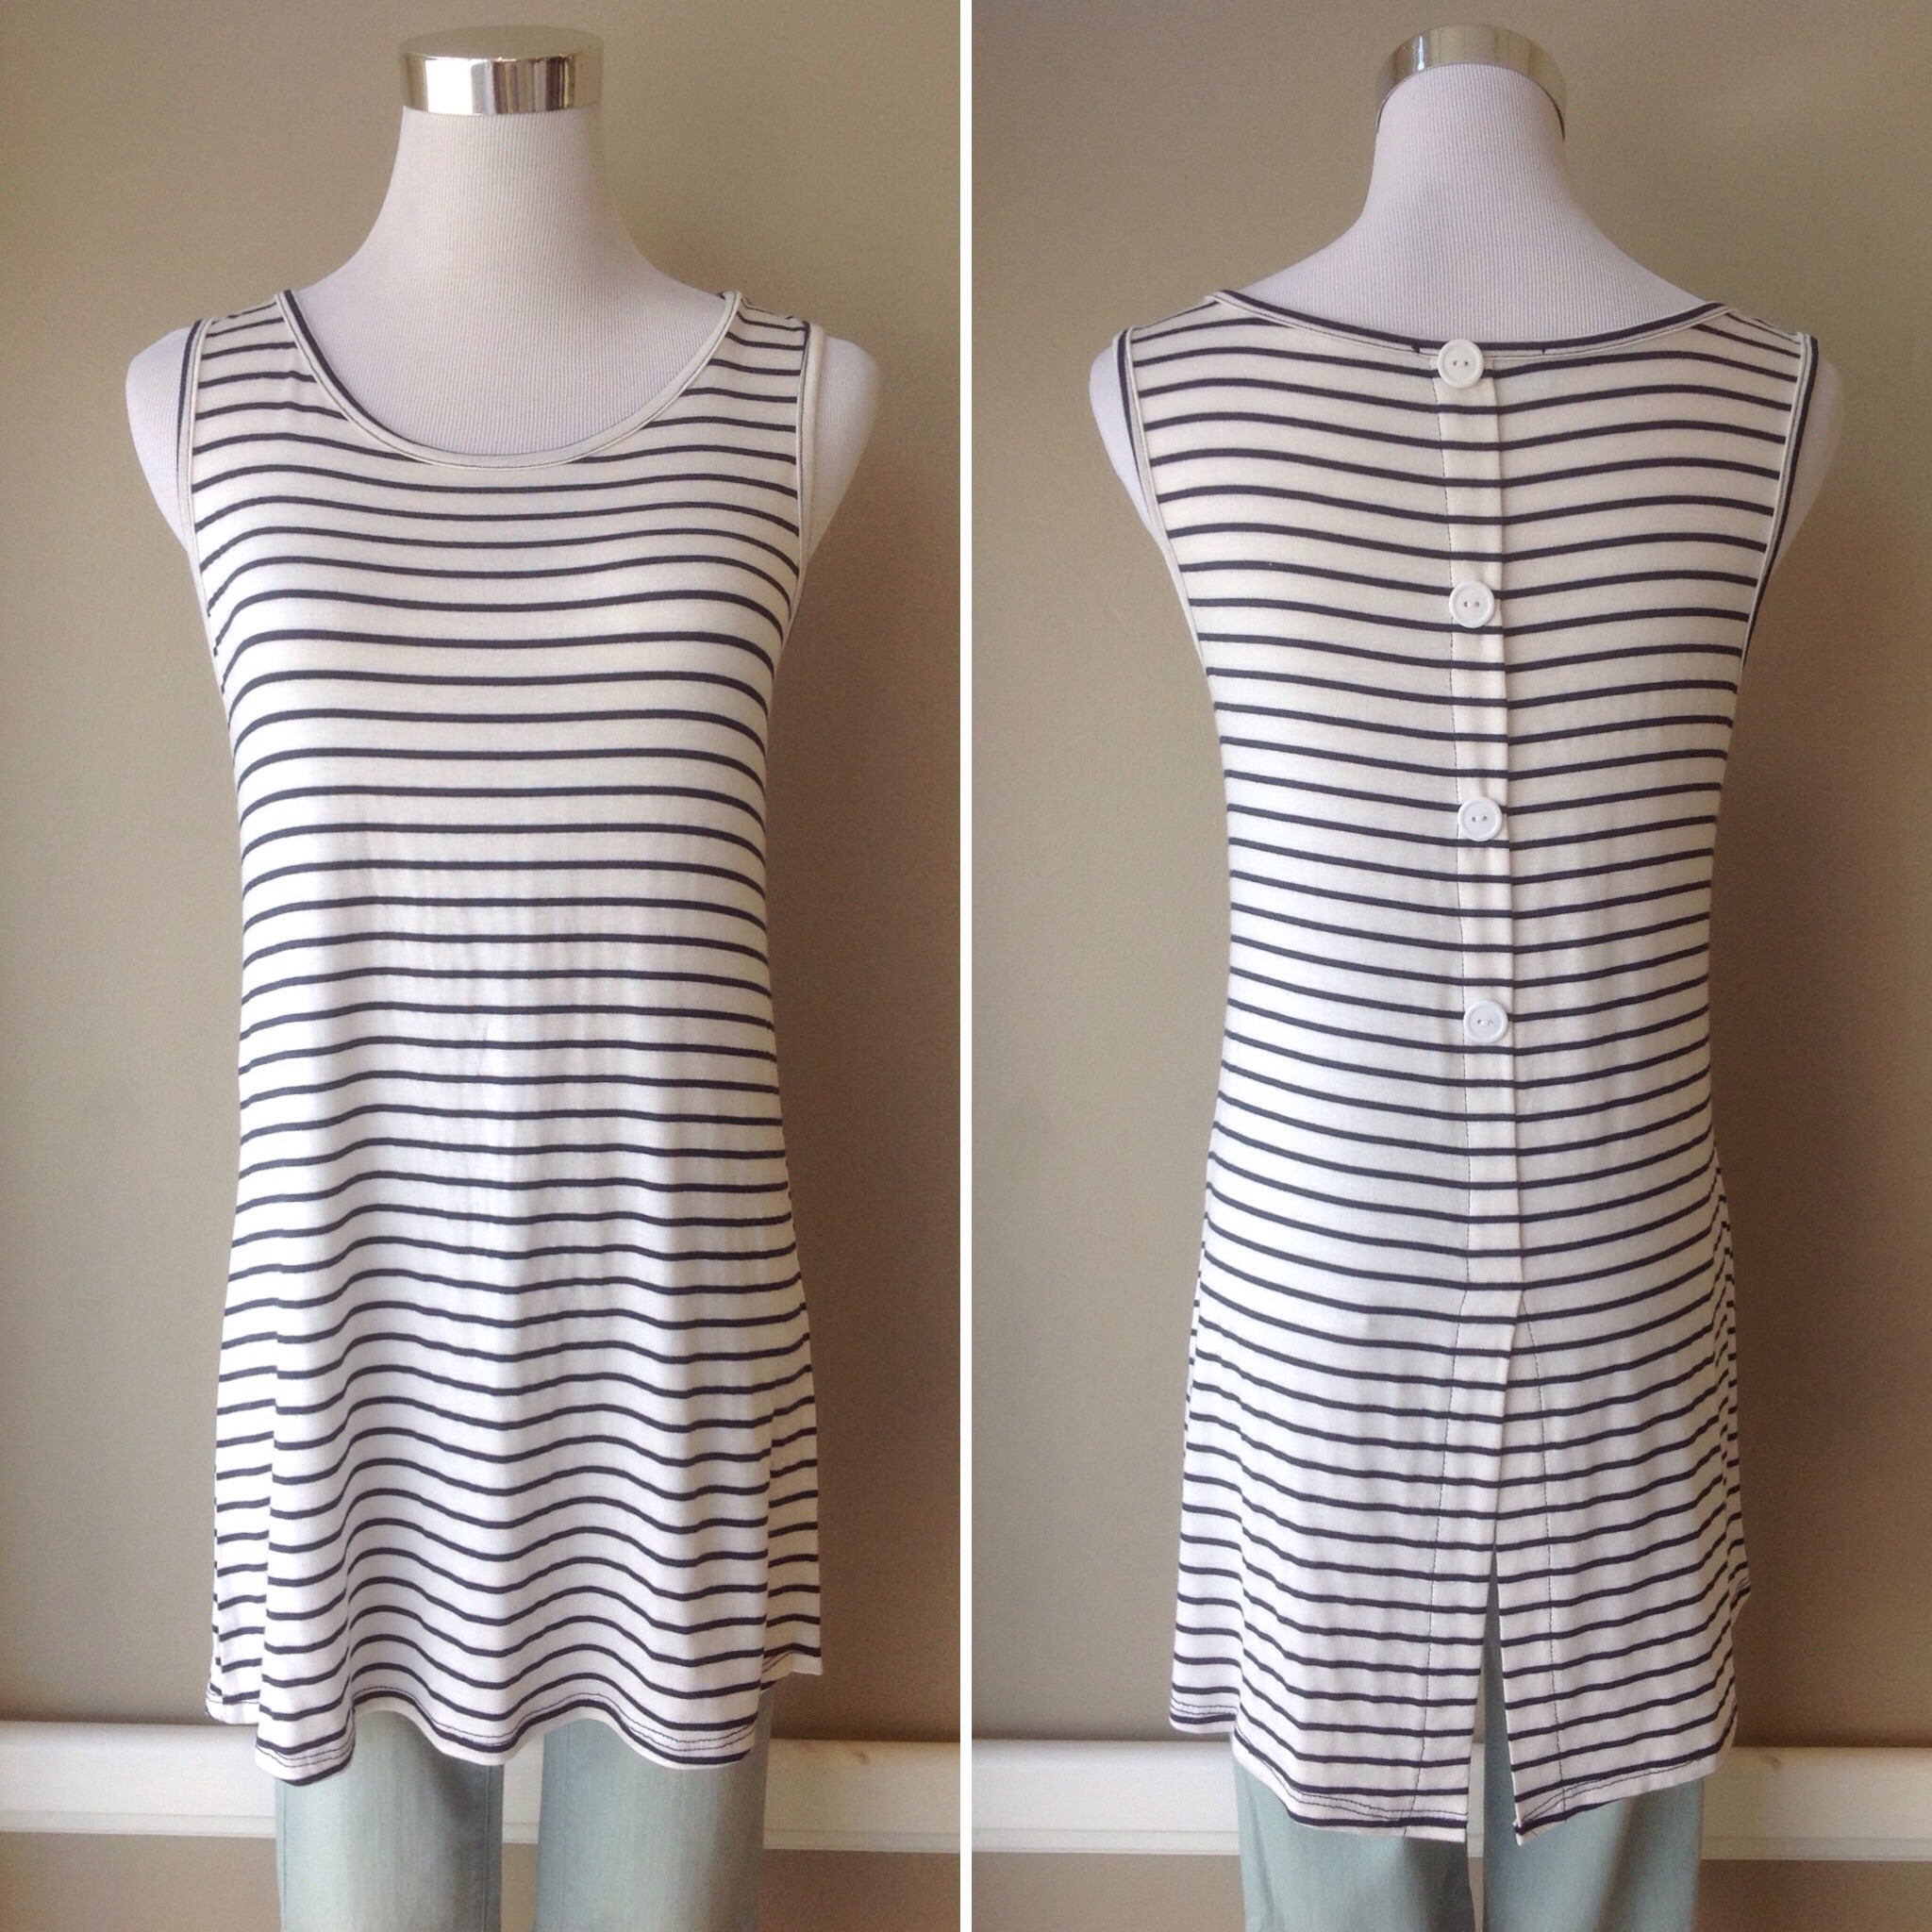 Long off-white and navy stripe tank with back button detail, $28